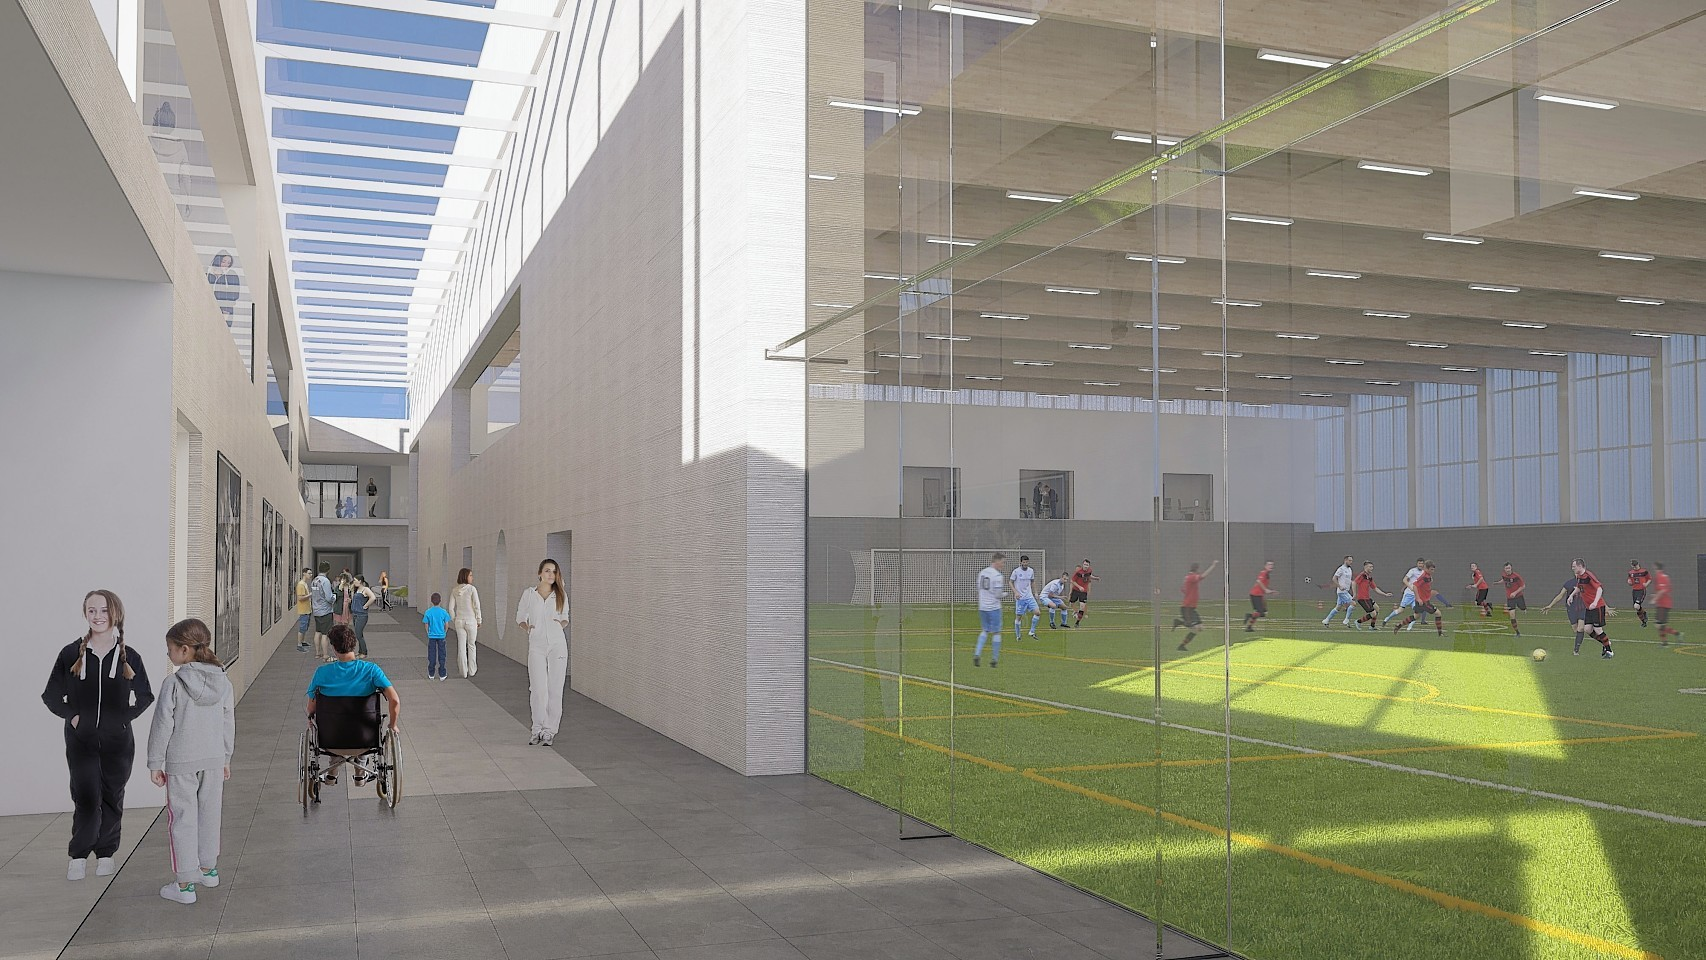 A look inside the proposed Garioch Sports and Community Centre